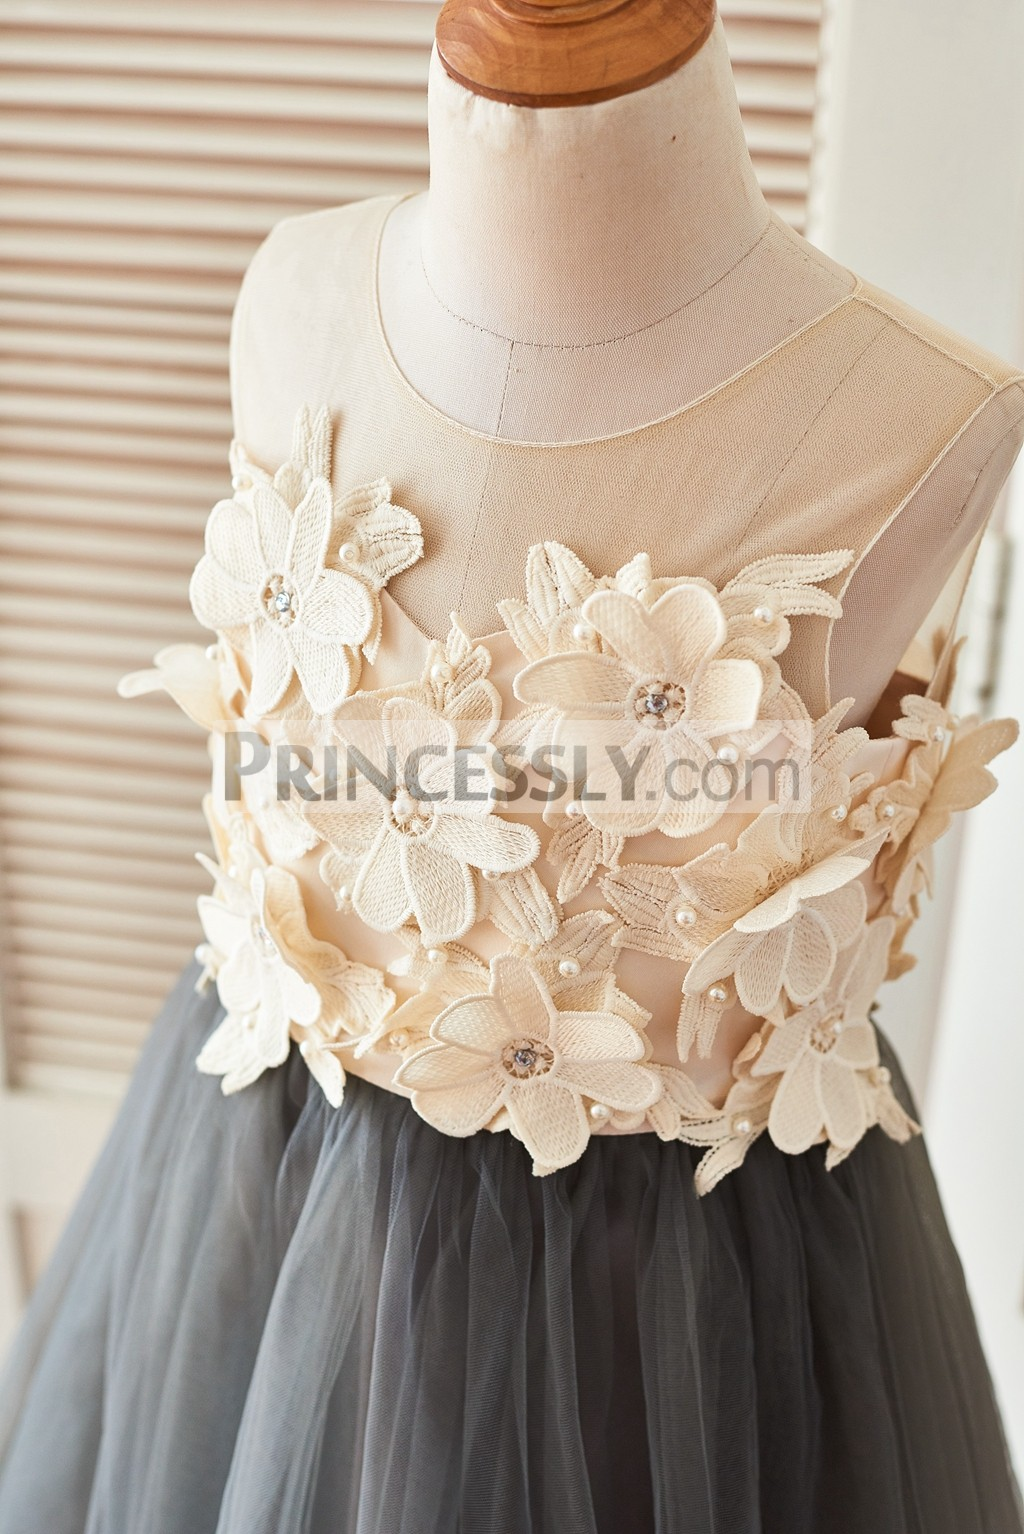 Sheer bodice with beaded 3D flowers in round neckline and sleeveless style